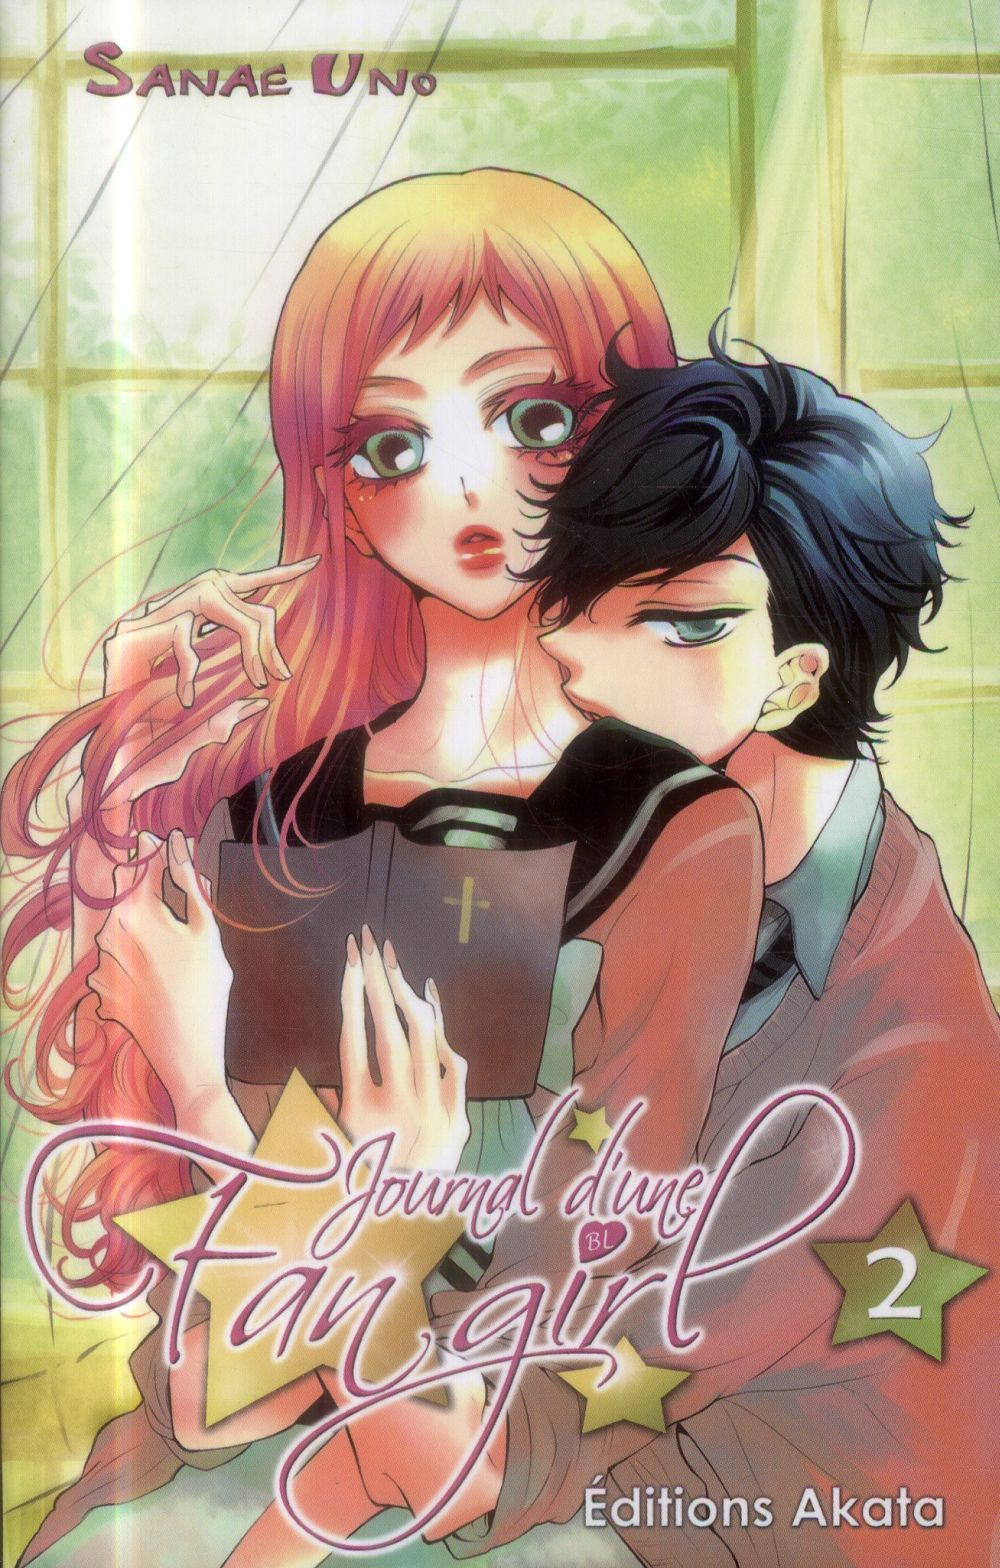 JOURNAL D'UNE FANGIRL - TOME 2